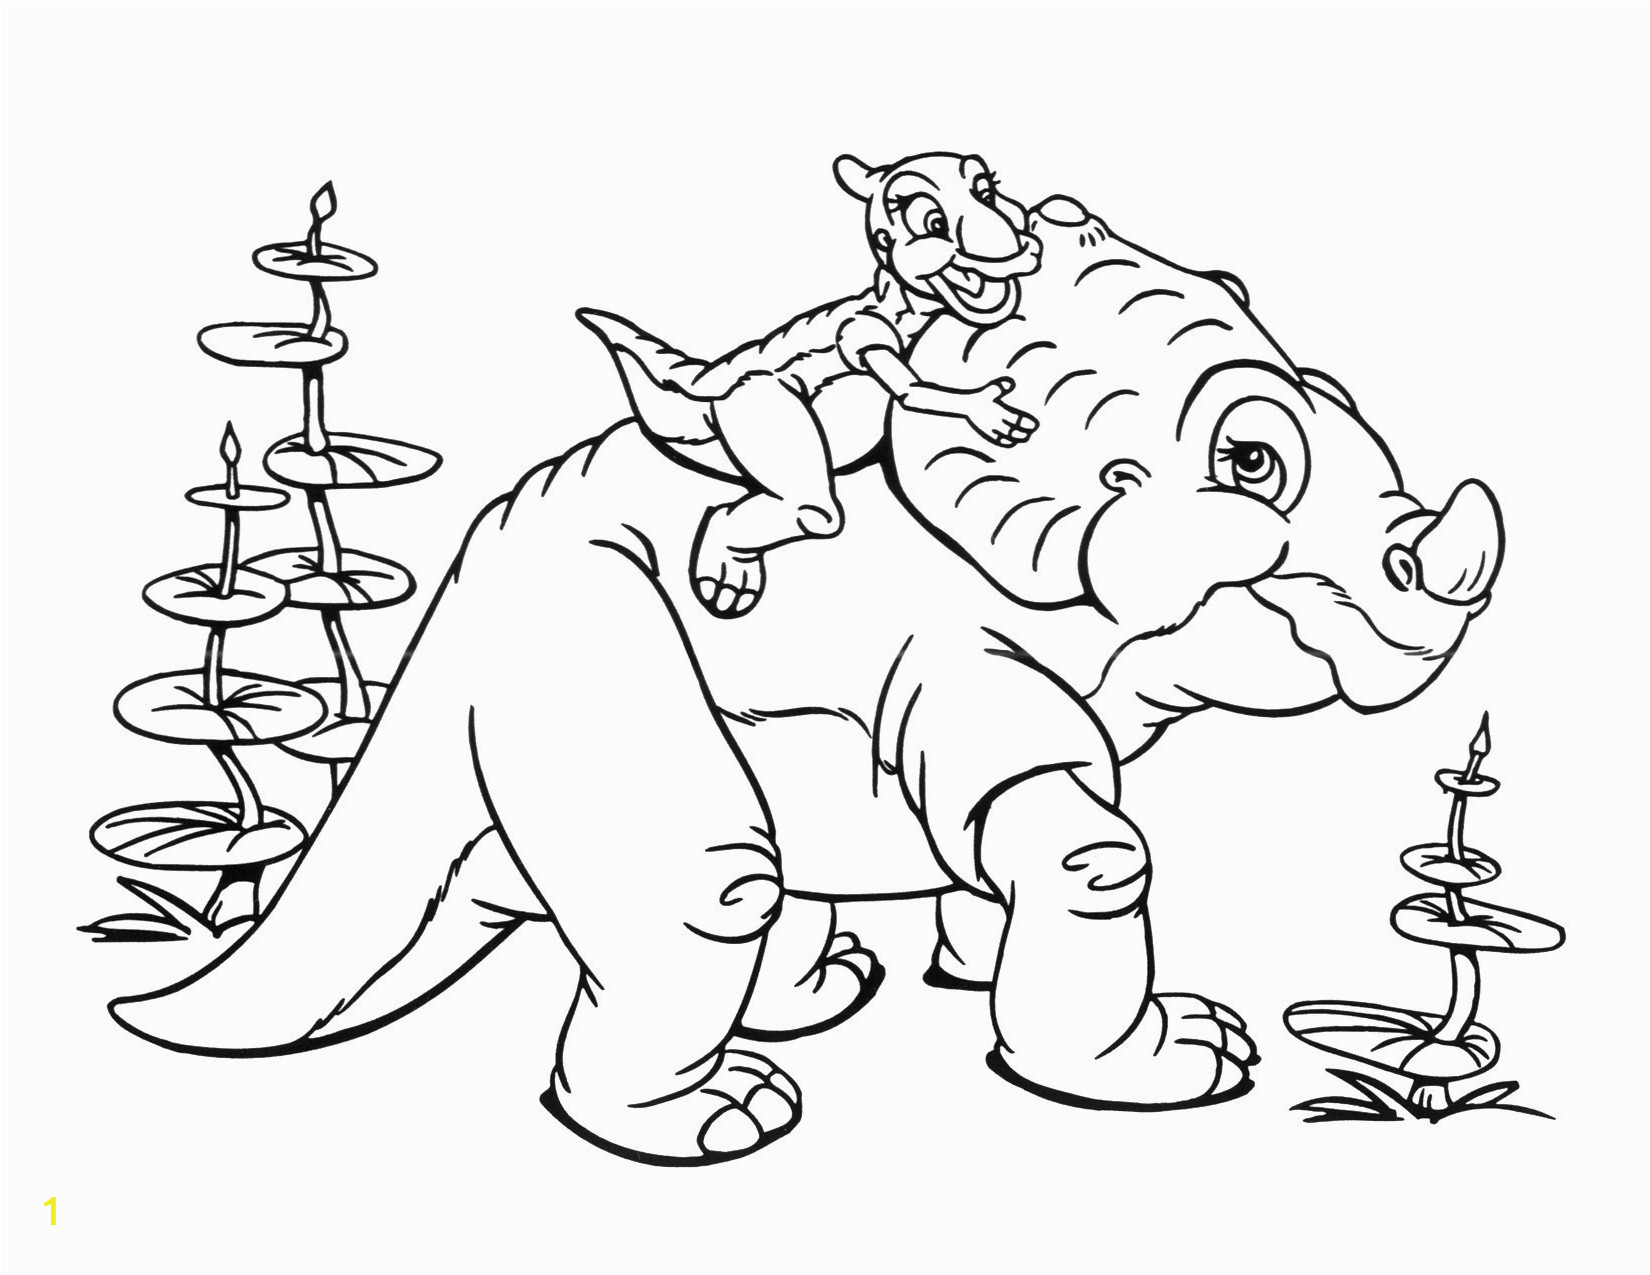 coloring page of animals for adults cool image horses coloring pages of coloring page of animals for adults